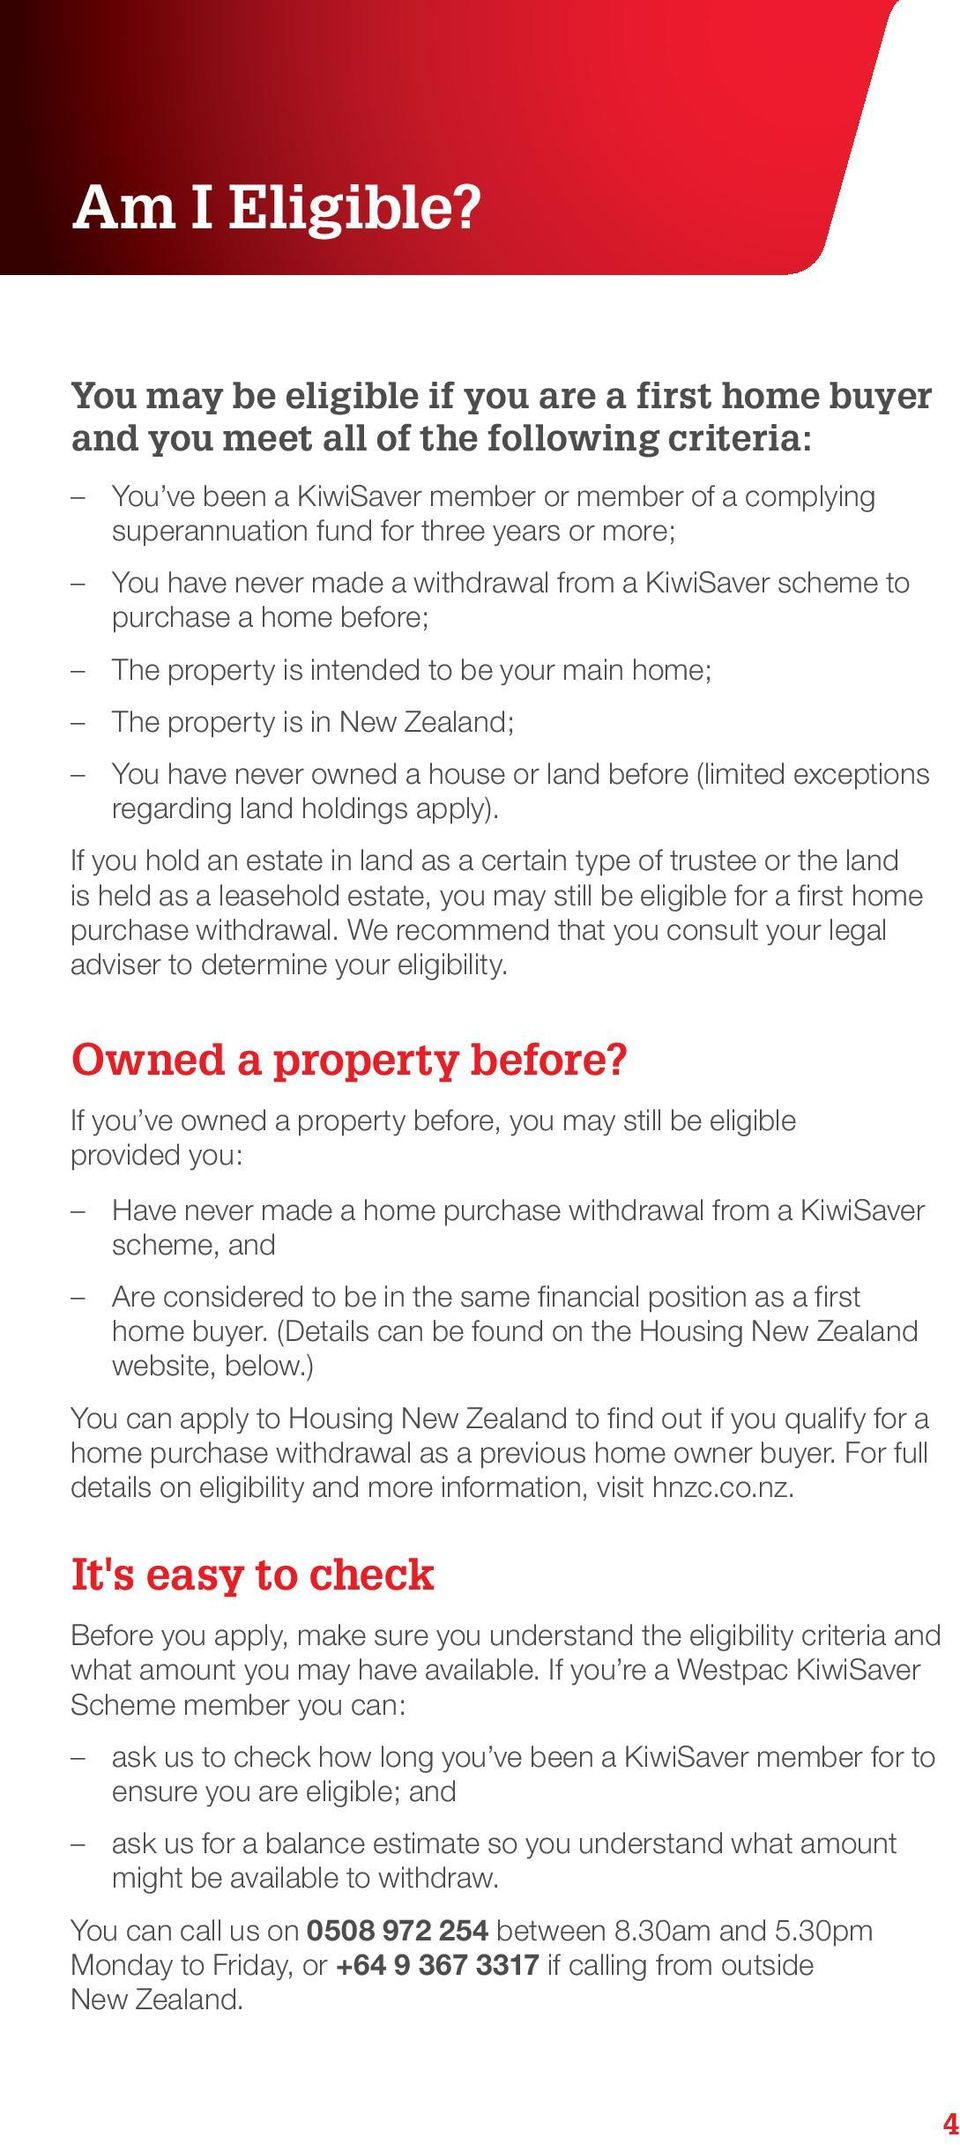 have never made a withdrawal from a KiwiSaver scheme to purchase a home before; The property is intended to be your main home; The property is in New Zealand; You have never owned a house or land